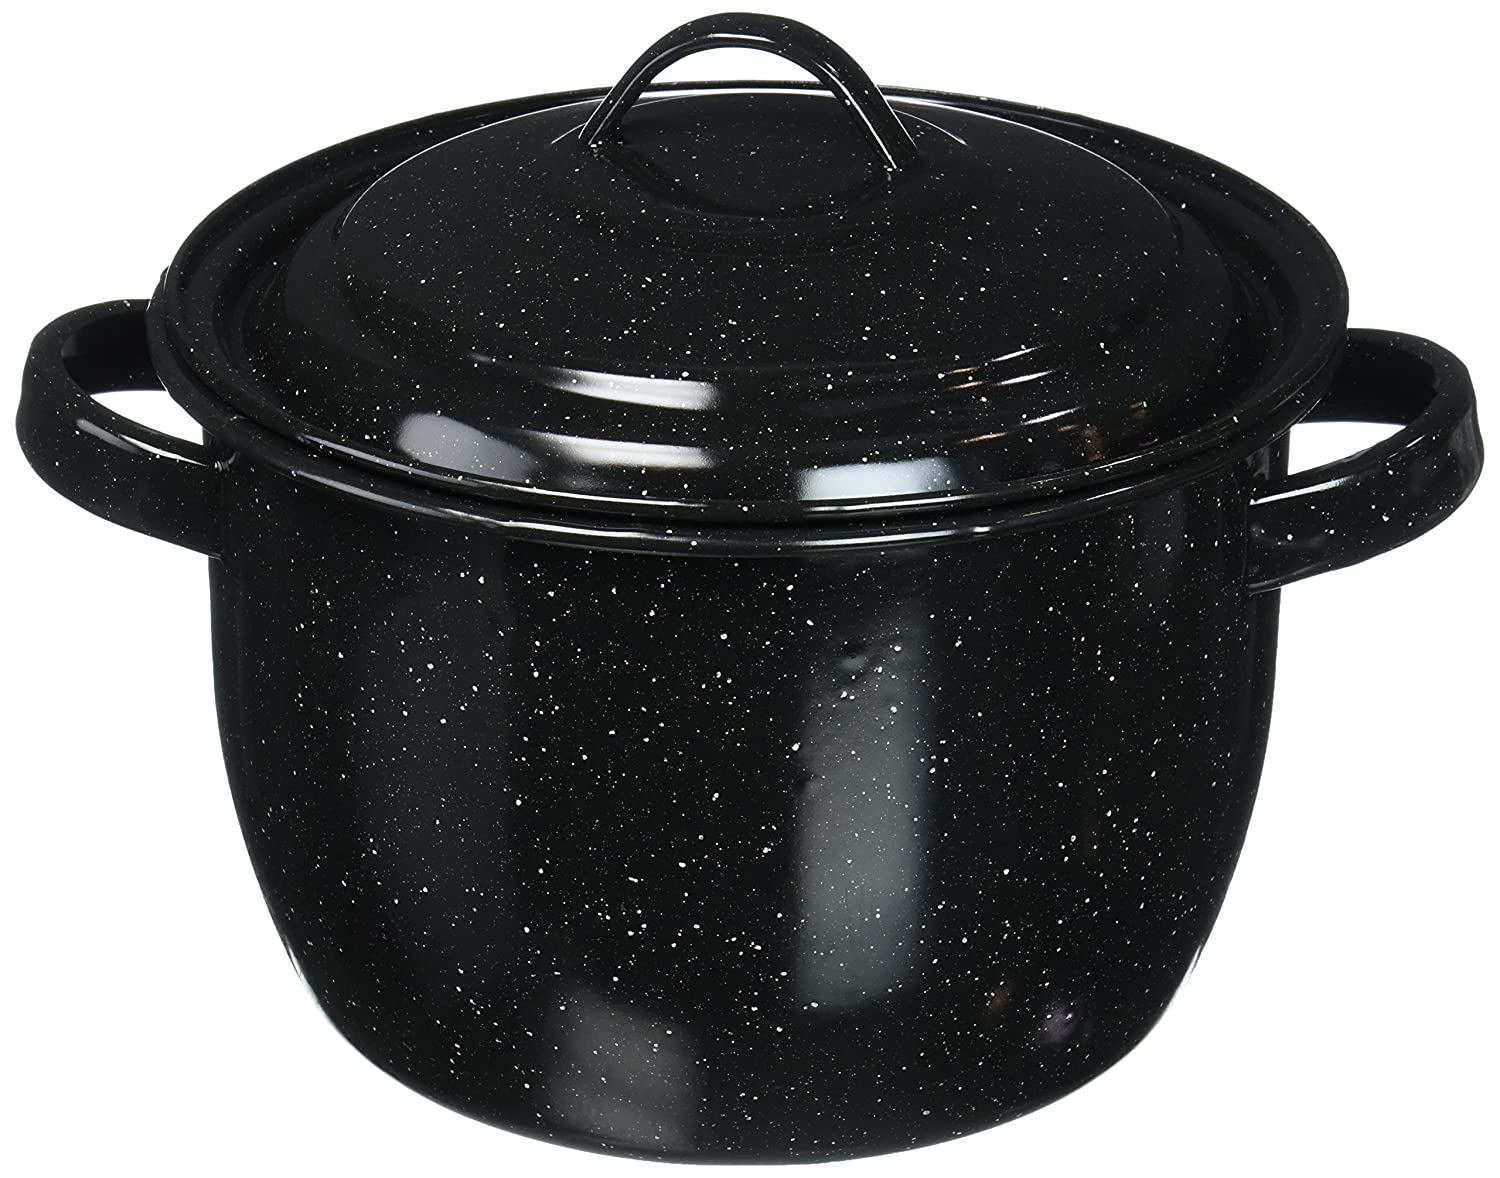 Granite Ware Bean Pot, 4-Quart